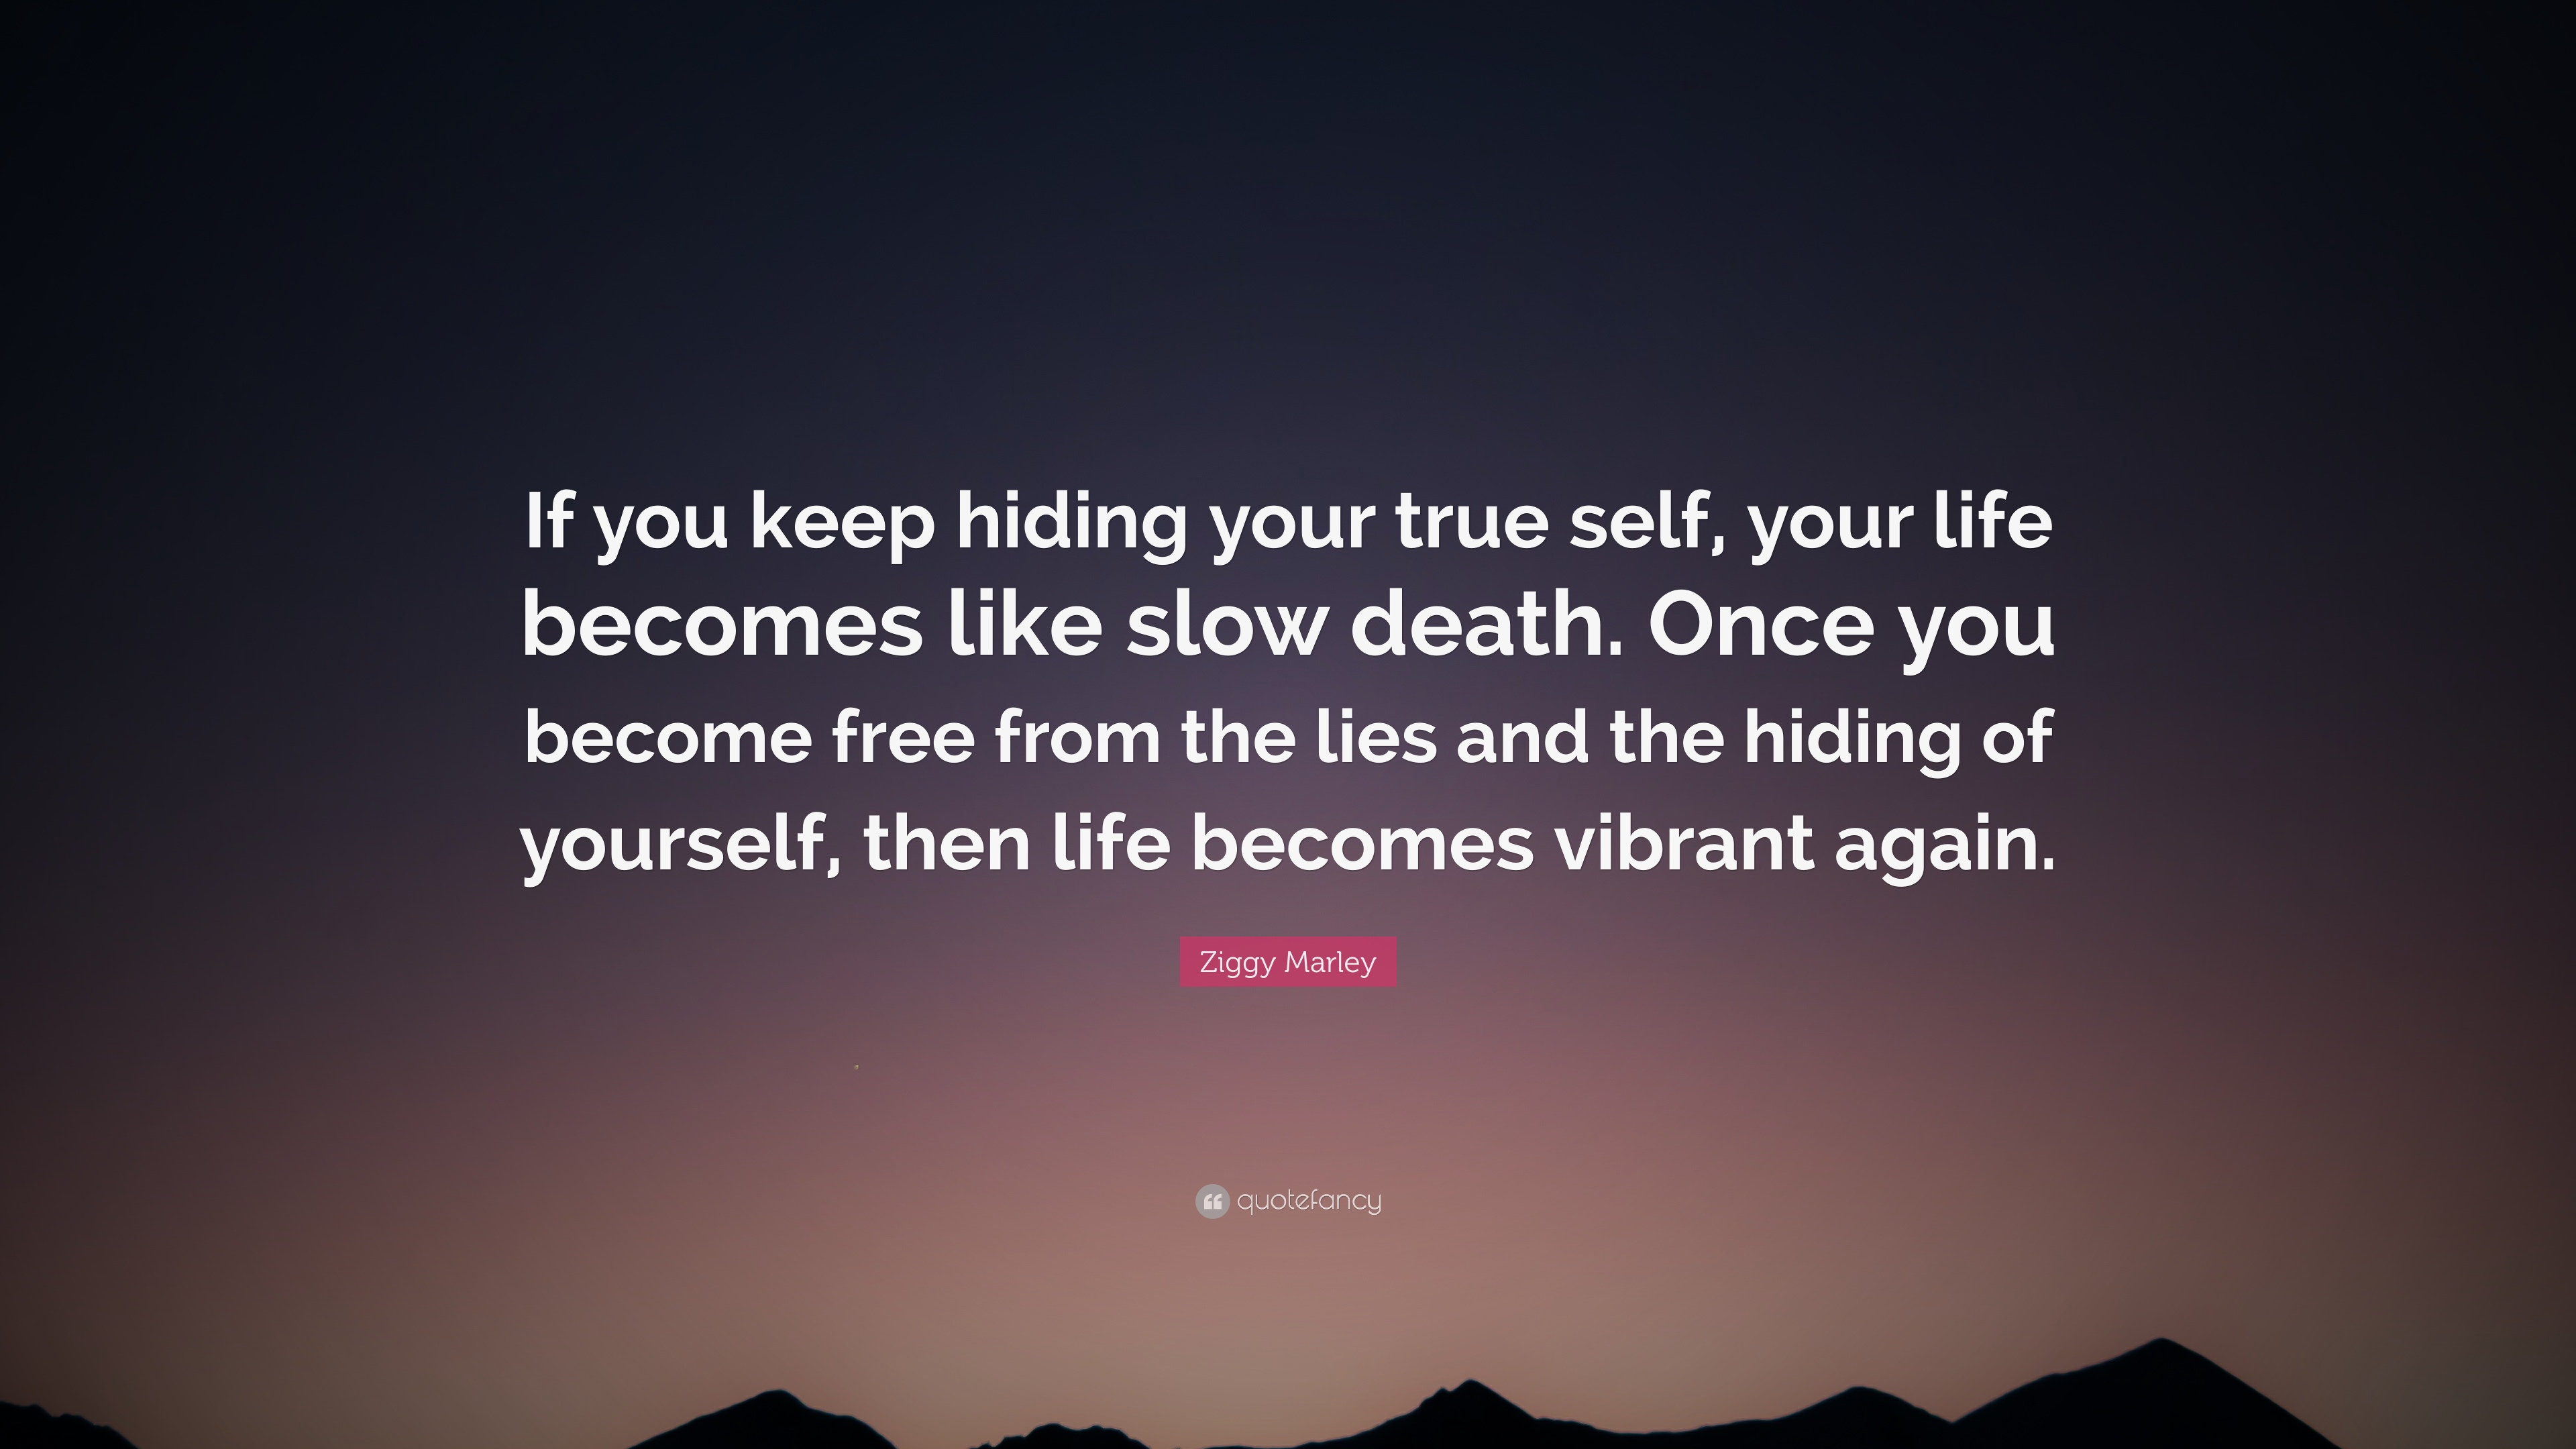 1742723-Ziggy-Marley-Quote-If-you-keep-hiding-your-true-self-your-life.jpg